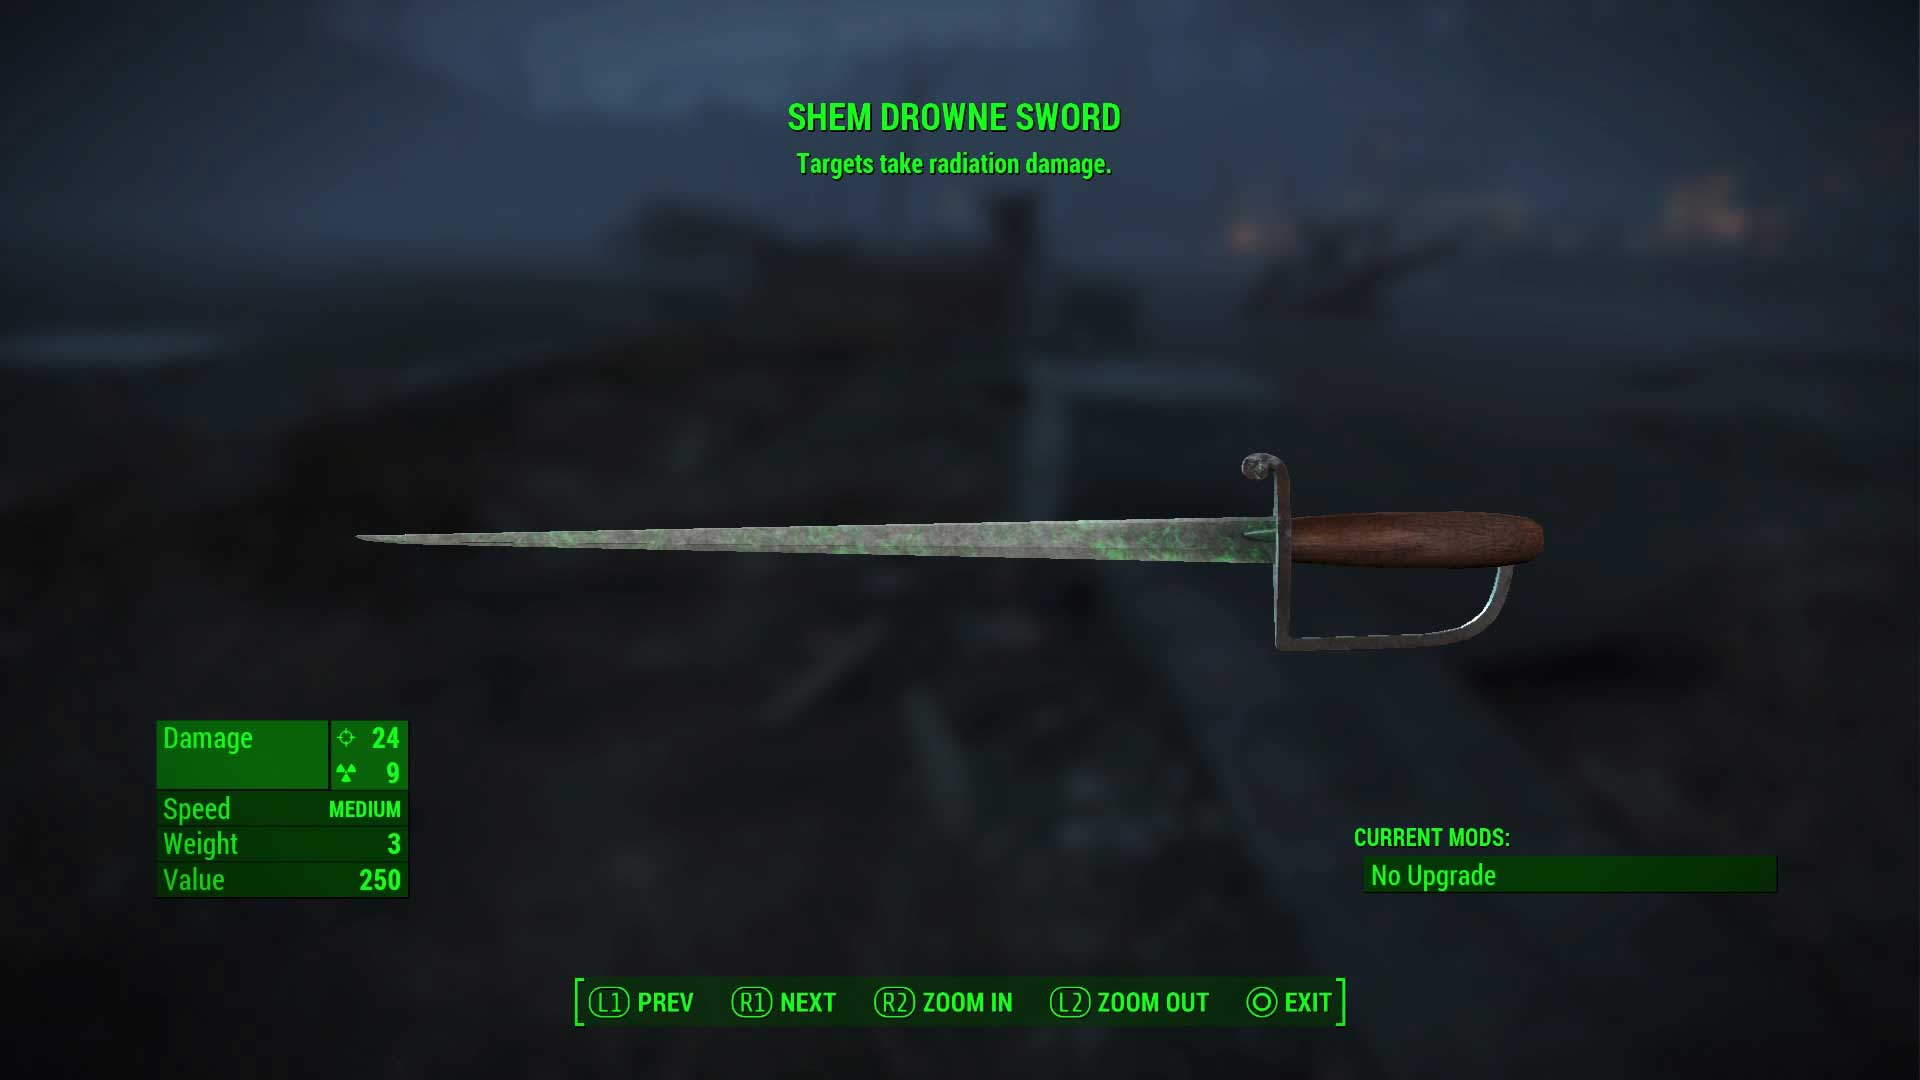 Fallout 4: where to find the most lethal weapons - VG247